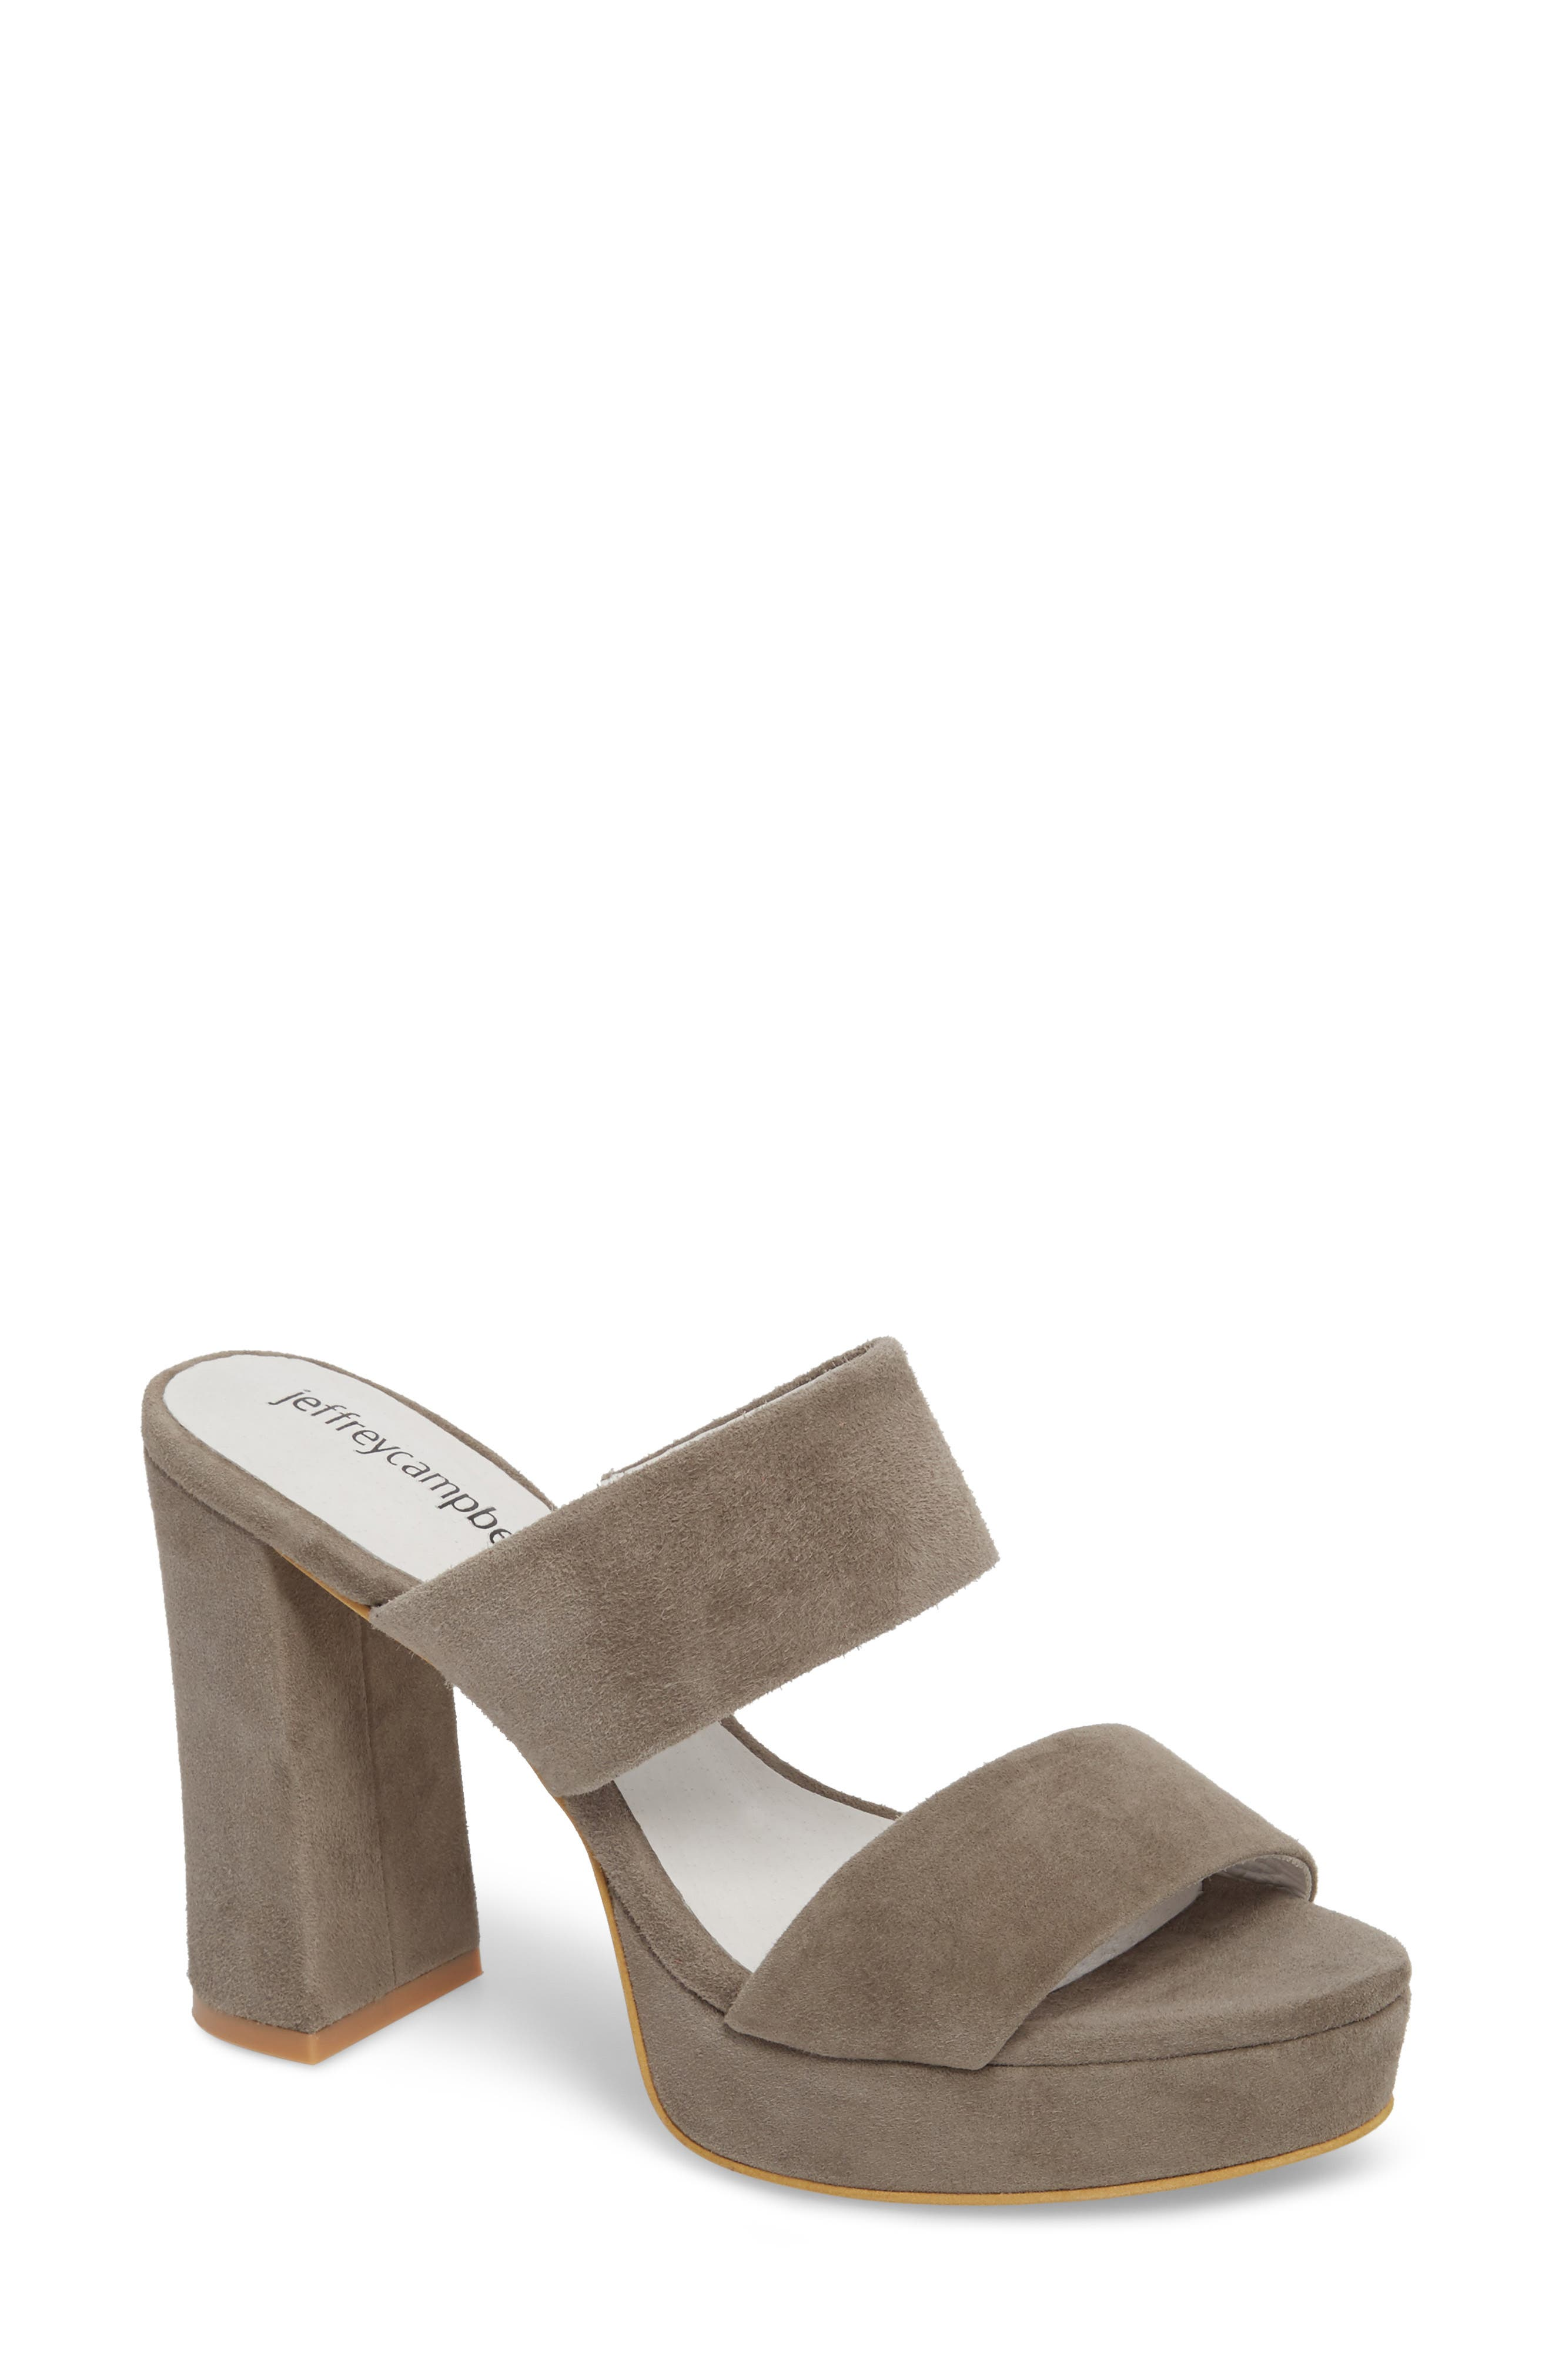 Adriana Double Band Platform Sandal,                         Main,                         color, Grey Suede